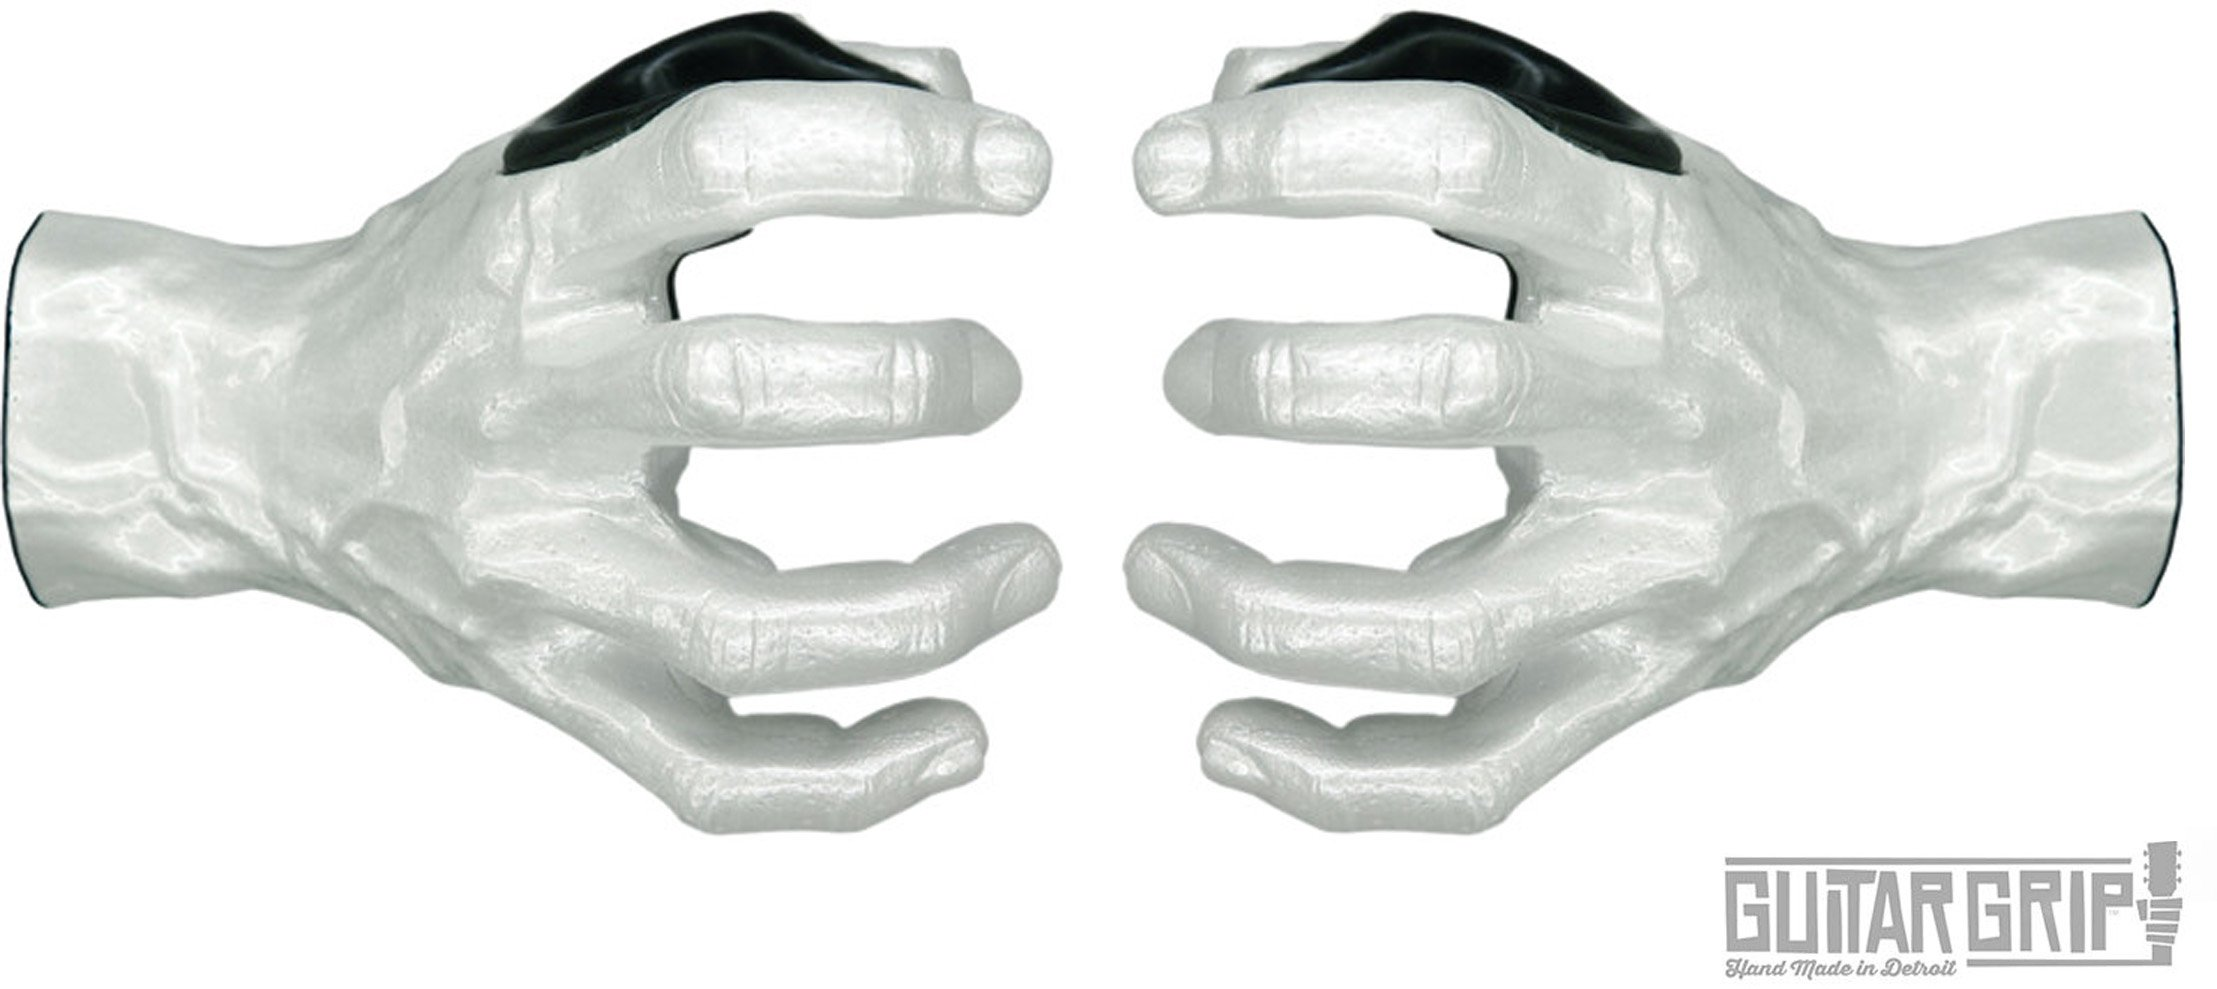 Guitar Grip Studios 2 Pack Left and Right Hand White Pearl Guitar Hangers